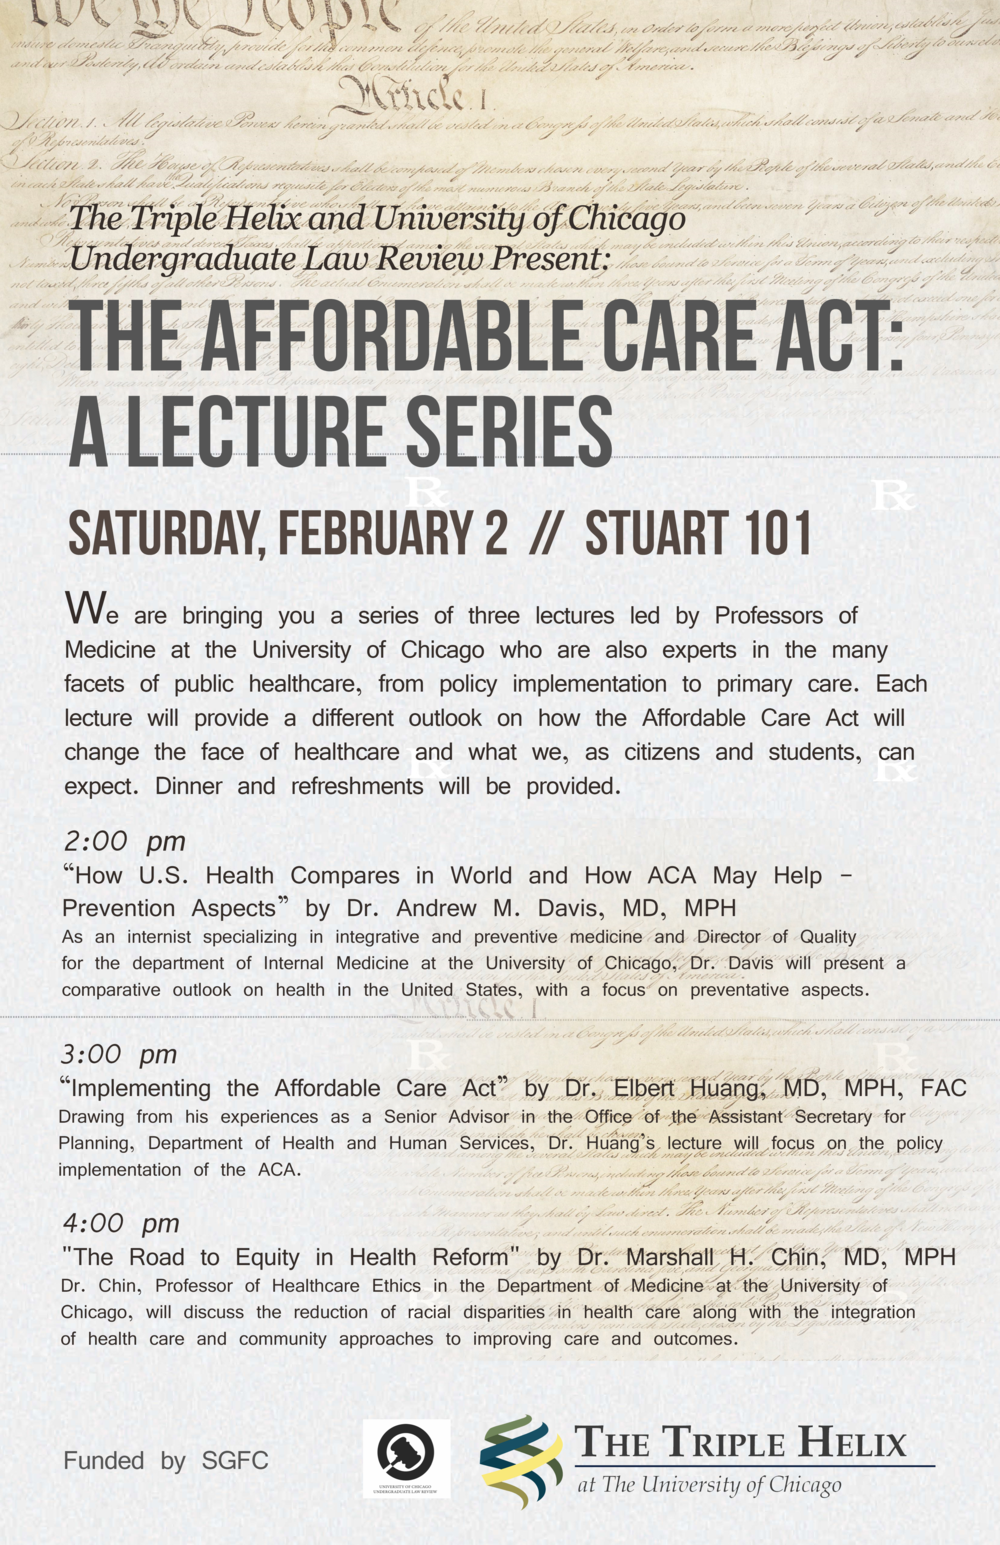 ACA Lecture Series